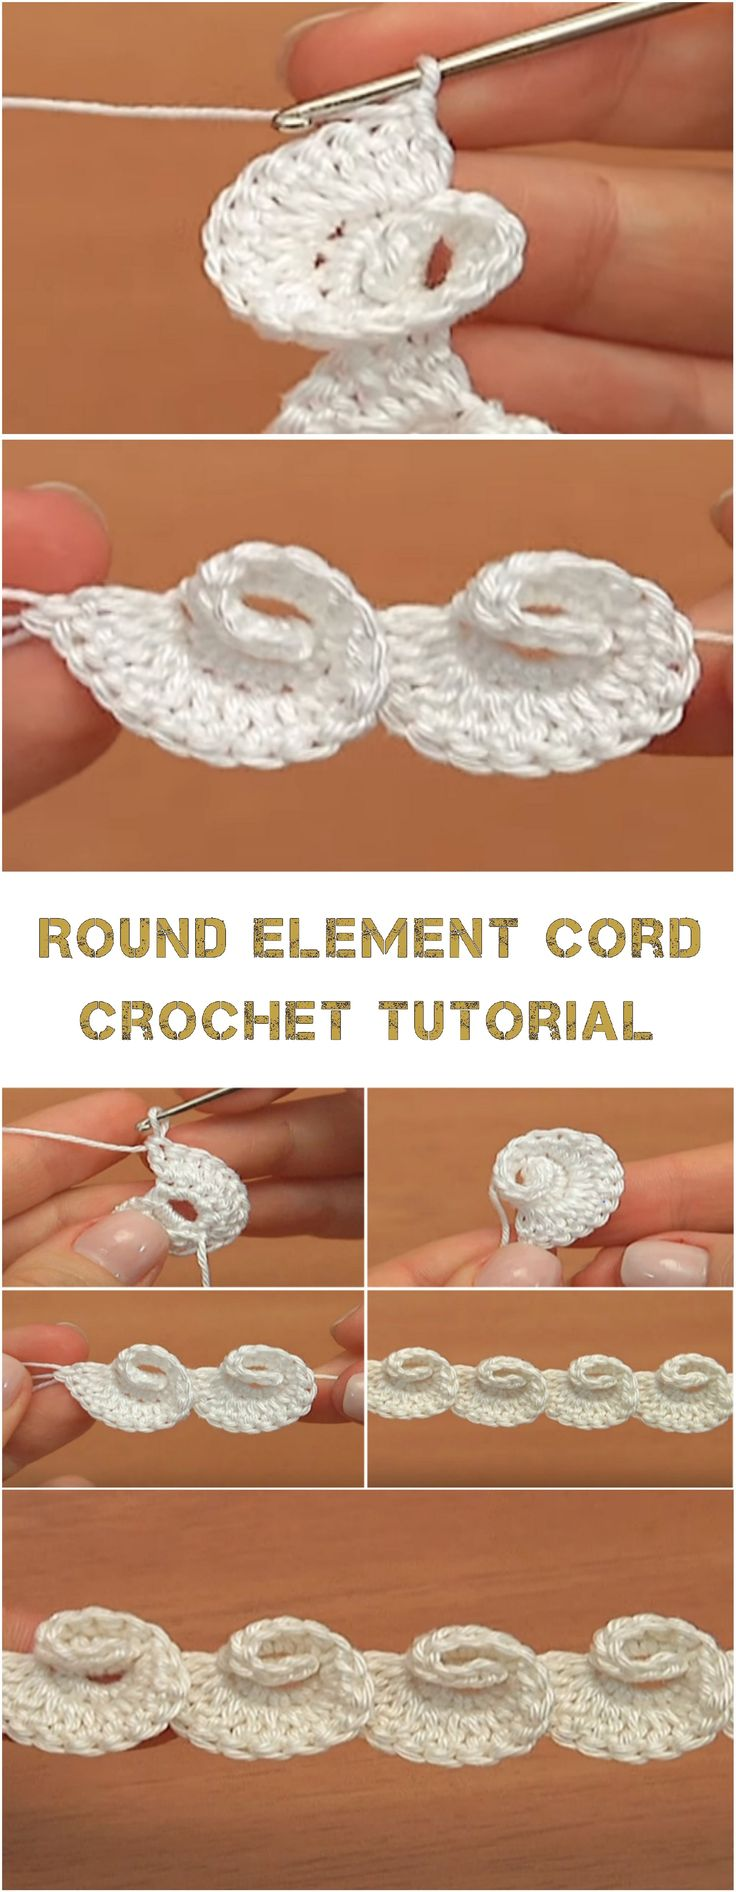 Round Element Cord Crochet Tutorial – Yarn & Hooks